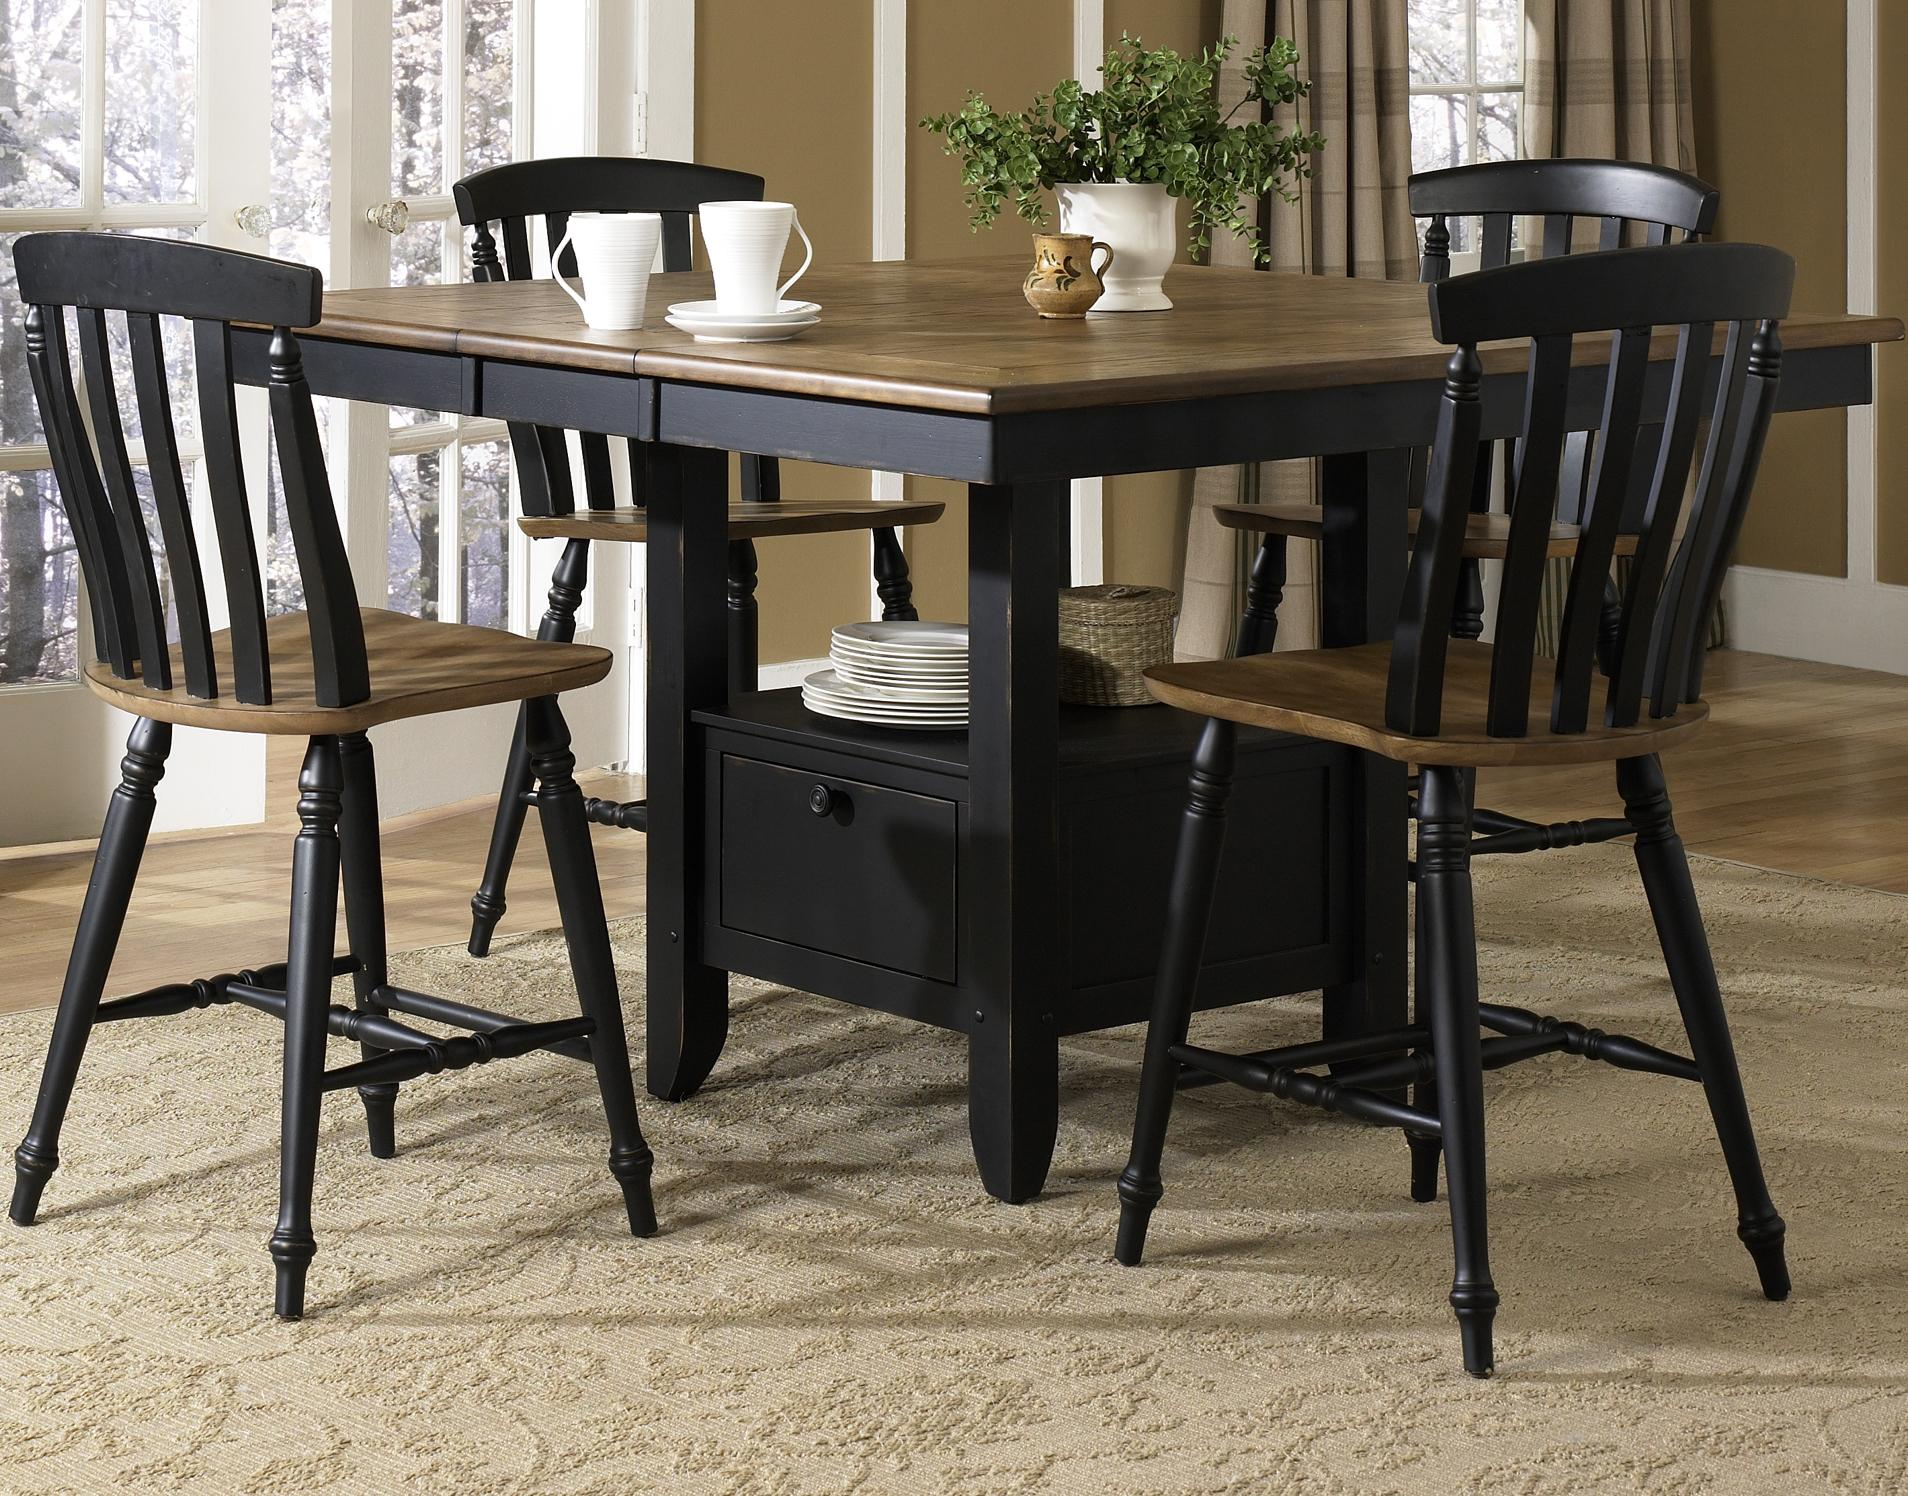 Al Fresco II 5 Piece Gathering Table and Chairs Set by Liberty Furniture at Lapeer Furniture & Mattress Center